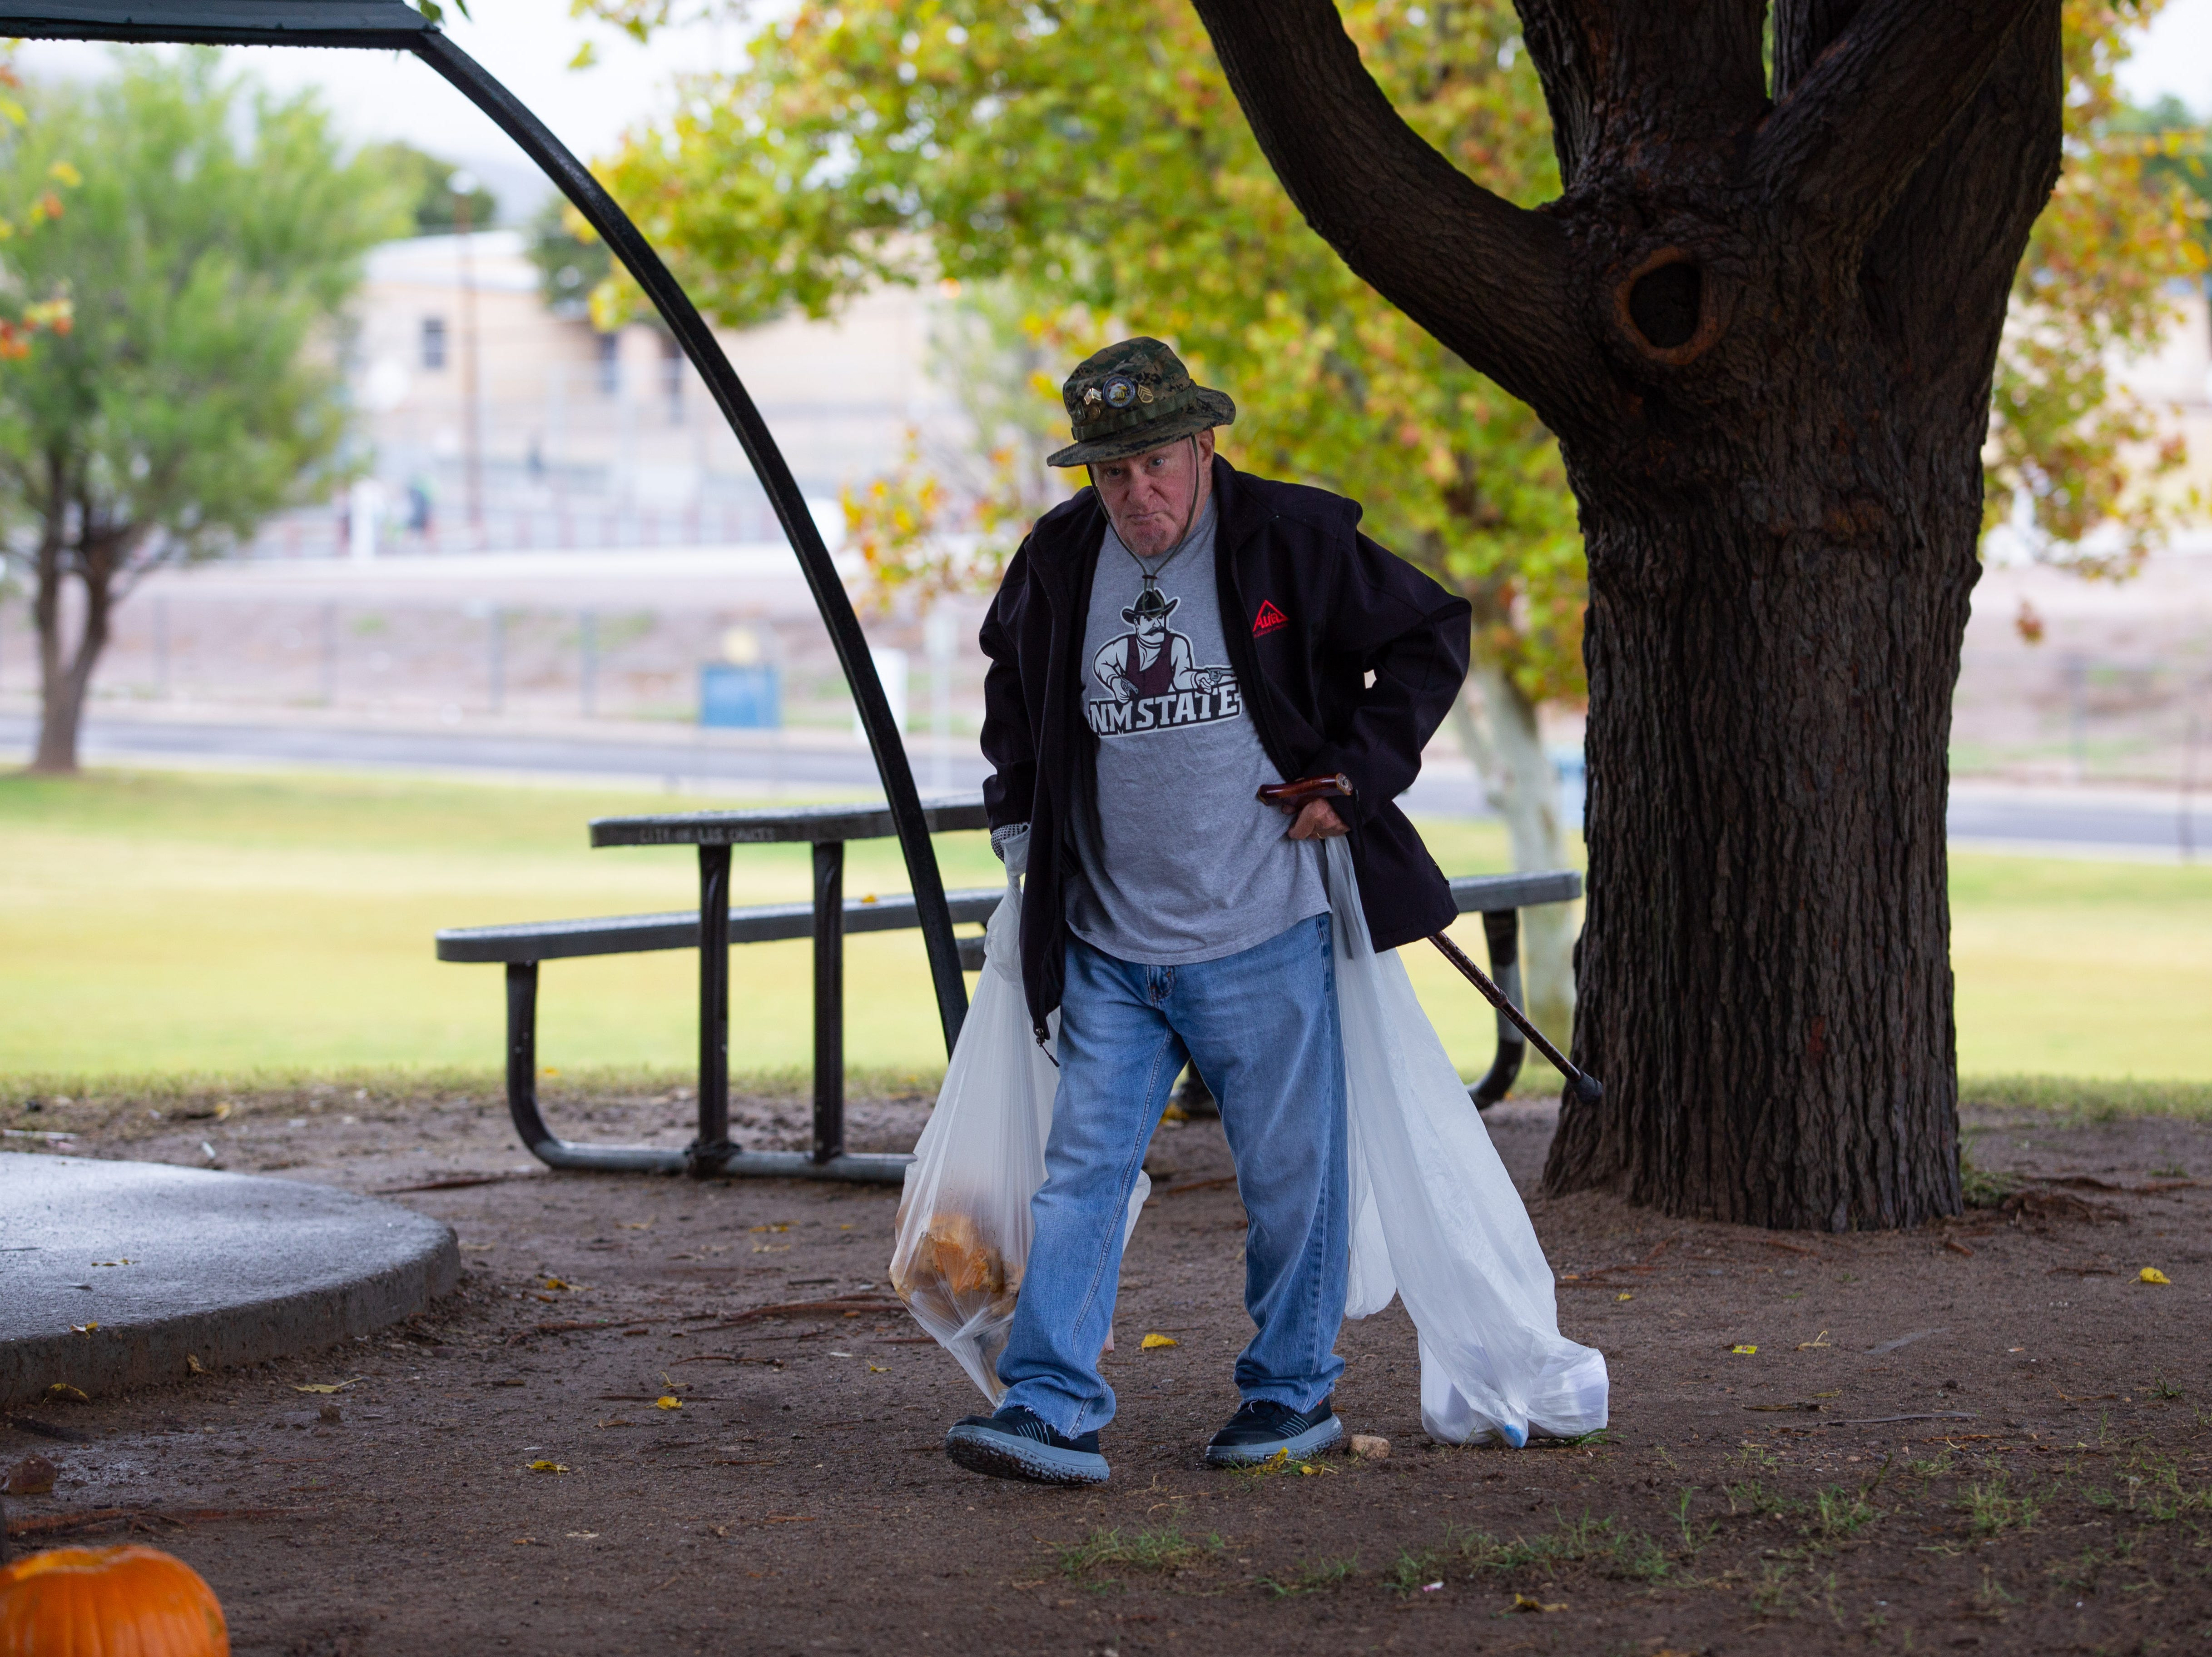 Vietnam veteran Marshal Ludwig participates in Toss No Mas at Young Park. The citywide cleanup event was held on Saturday, October 13, 2018.